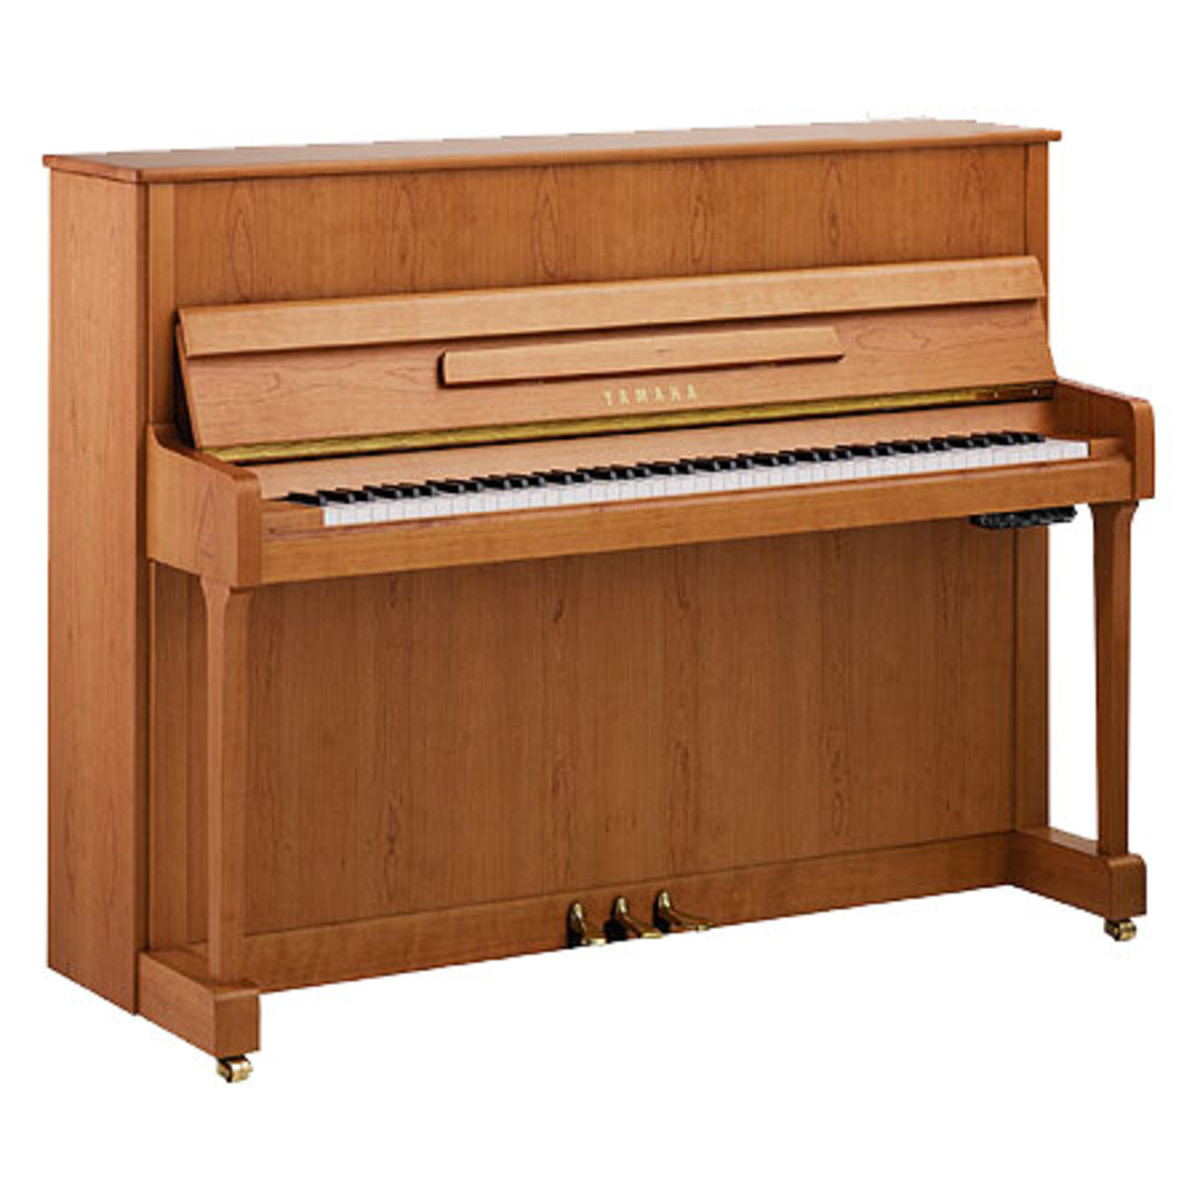 yamaha b2 upright acoustic piano natural cherry satin at gear4music. Black Bedroom Furniture Sets. Home Design Ideas